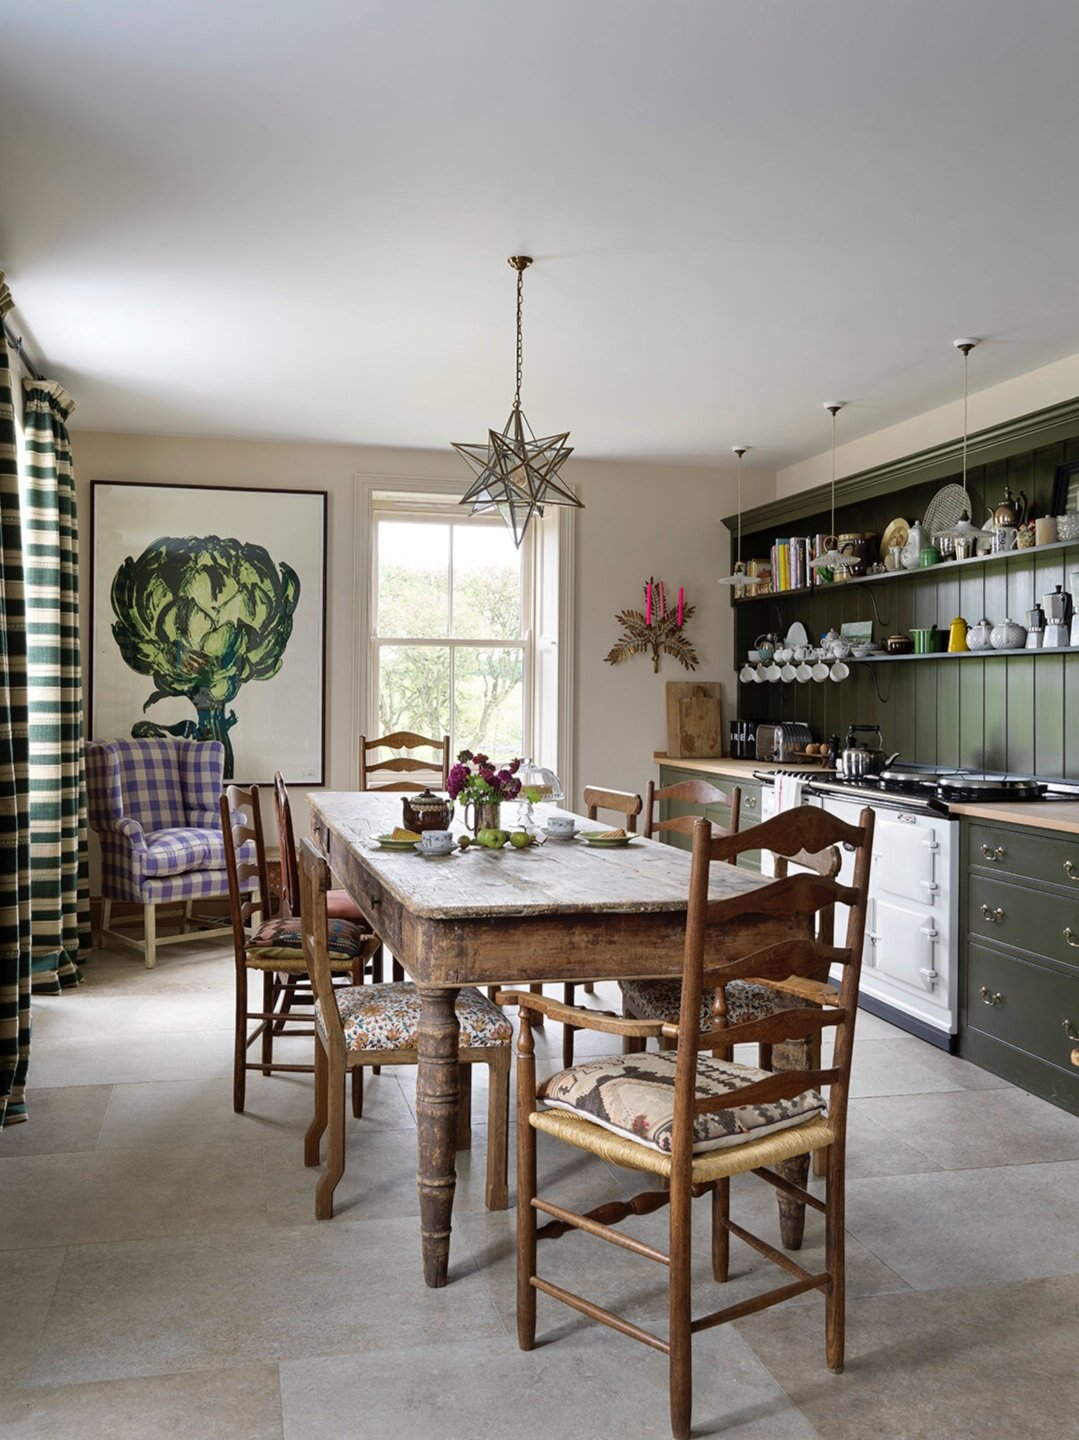 Green-kitchen-cabinets-farmhouse-dining-table-eat-in-rita